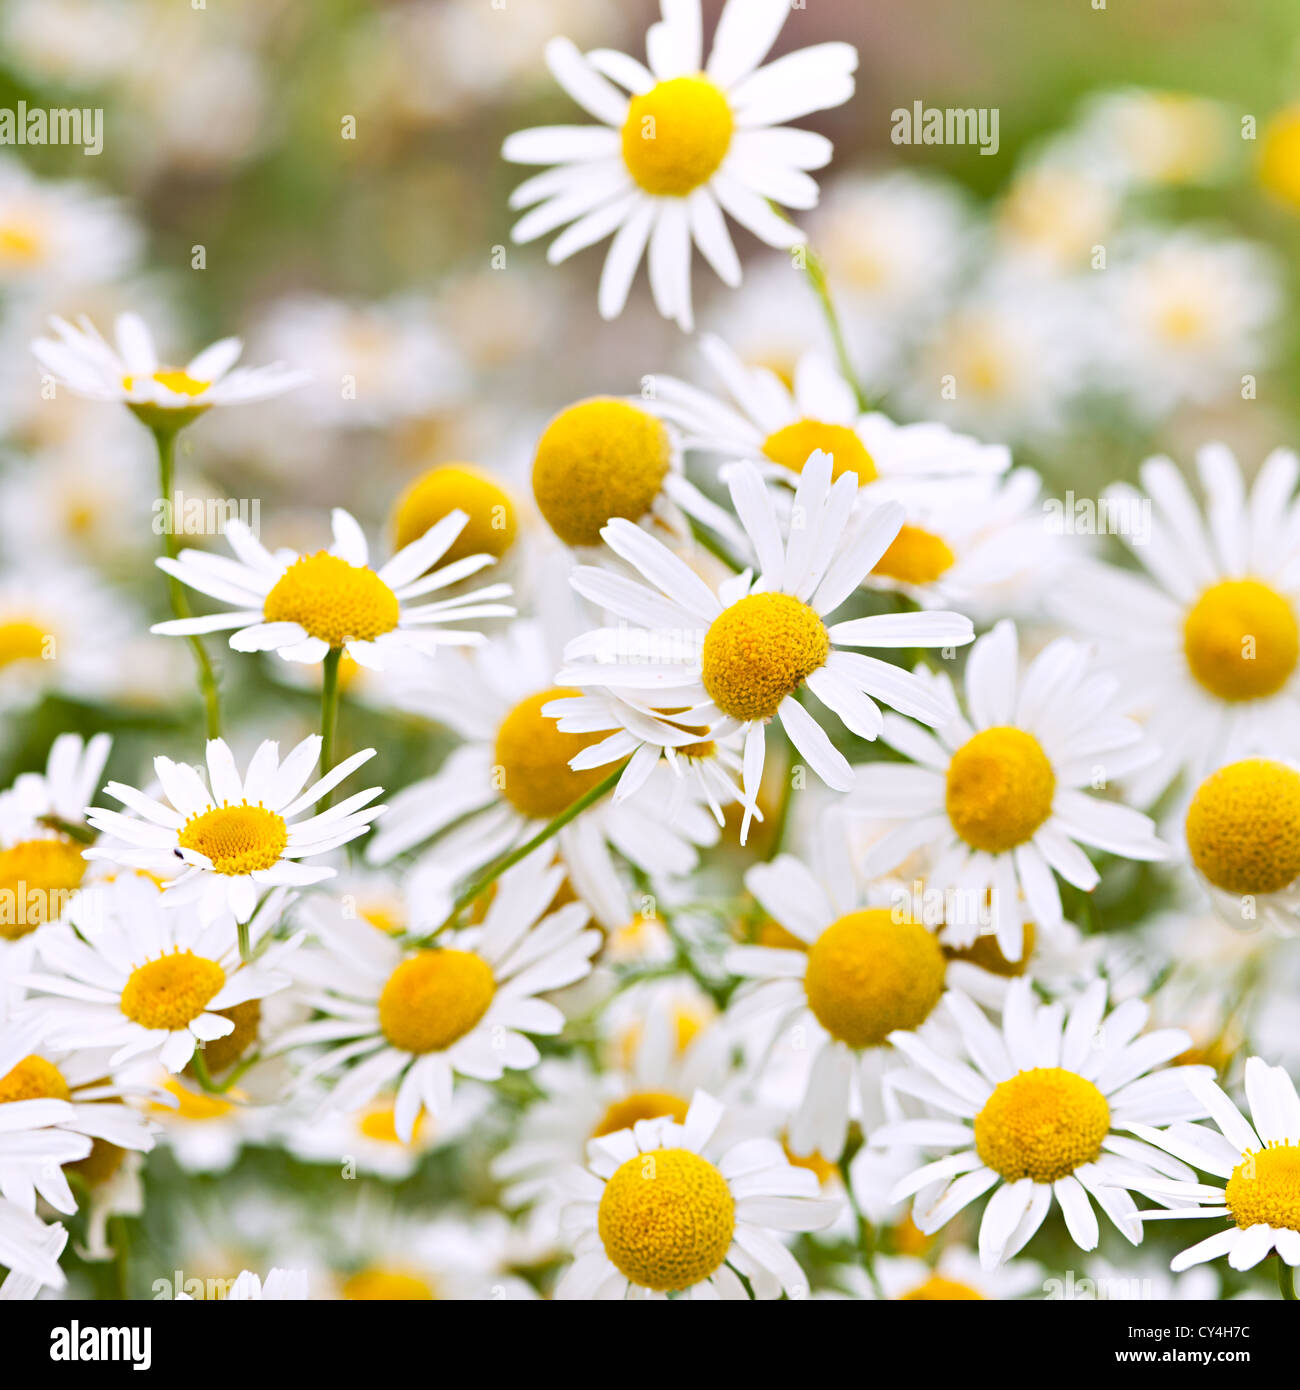 Flowering chamomile growing in summer meadow close up - Stock Image